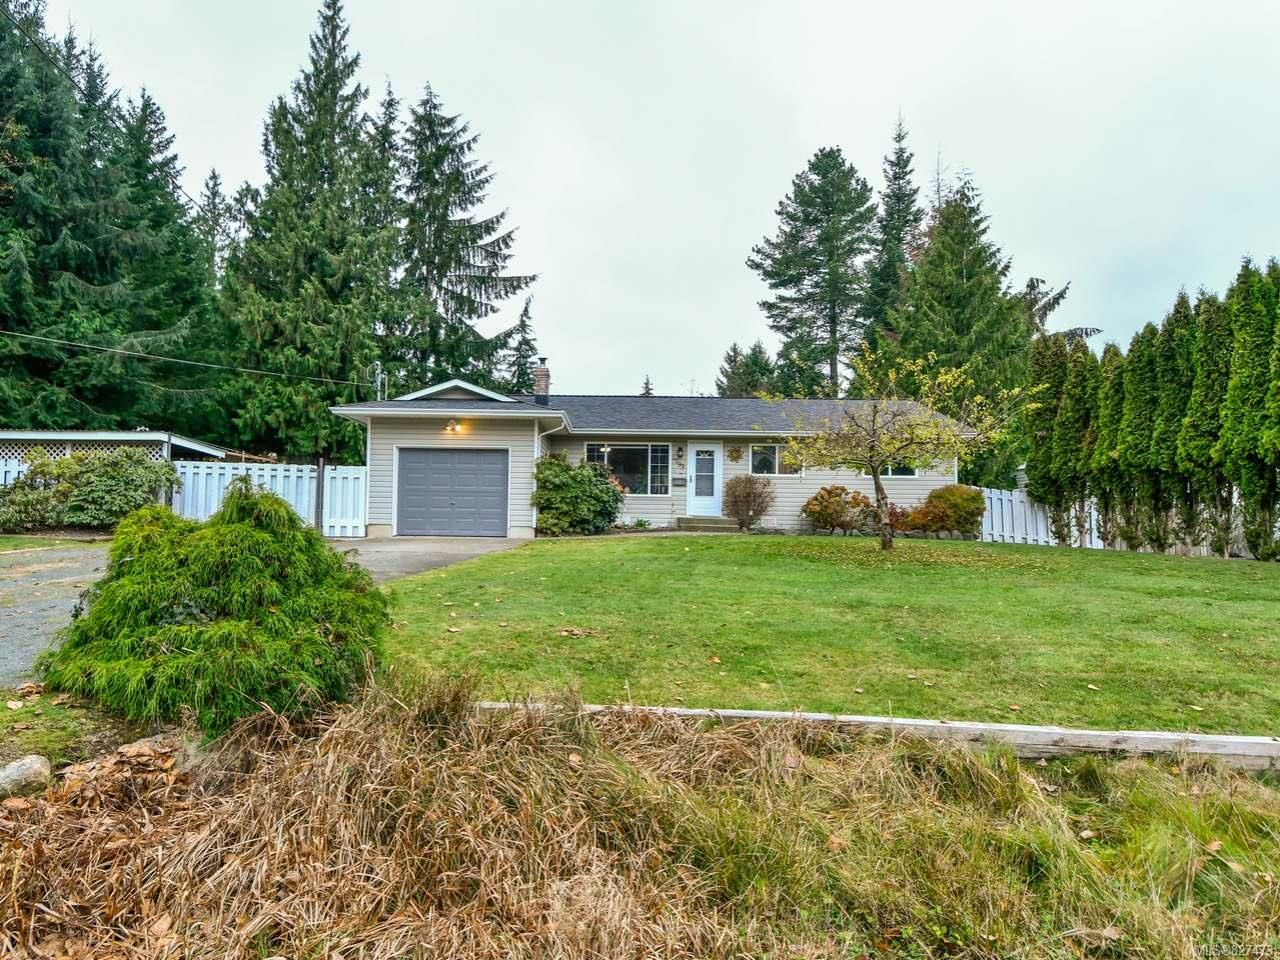 Main Photo: 4199 Enquist Rd in CAMPBELL RIVER: CR Campbell River South House for sale (Campbell River)  : MLS®# 827473